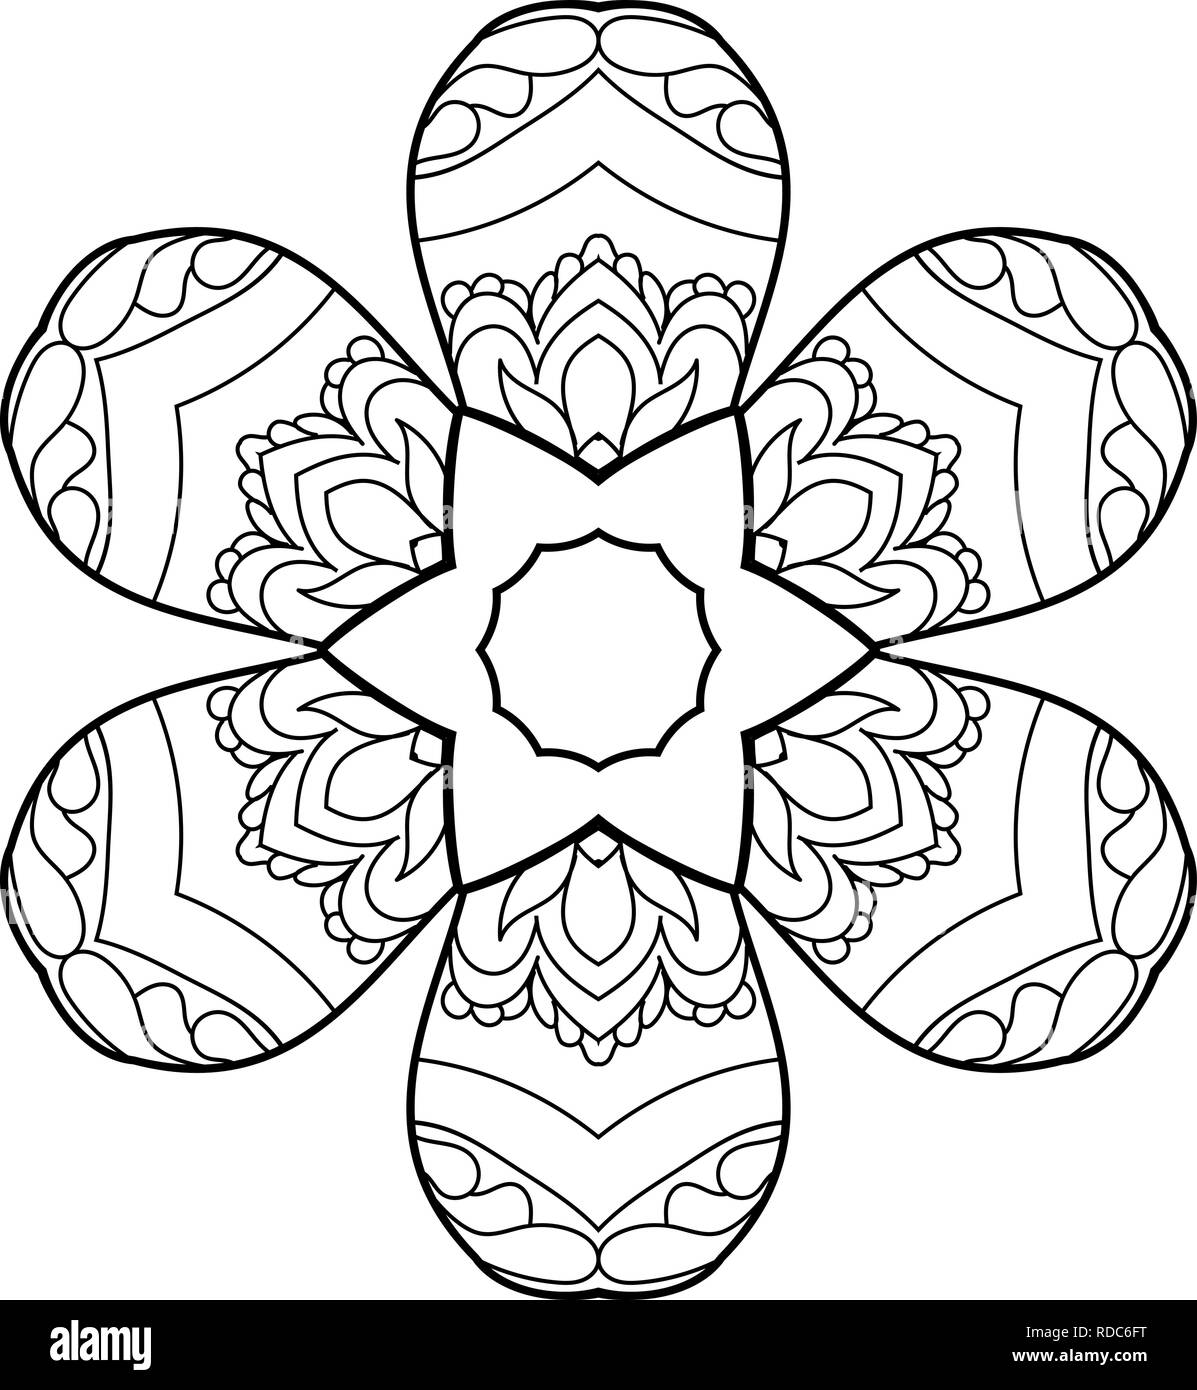 the black and the white stock photos the black and the white stock  coloring book for adult and older children coloring page with cute owl and floral frame